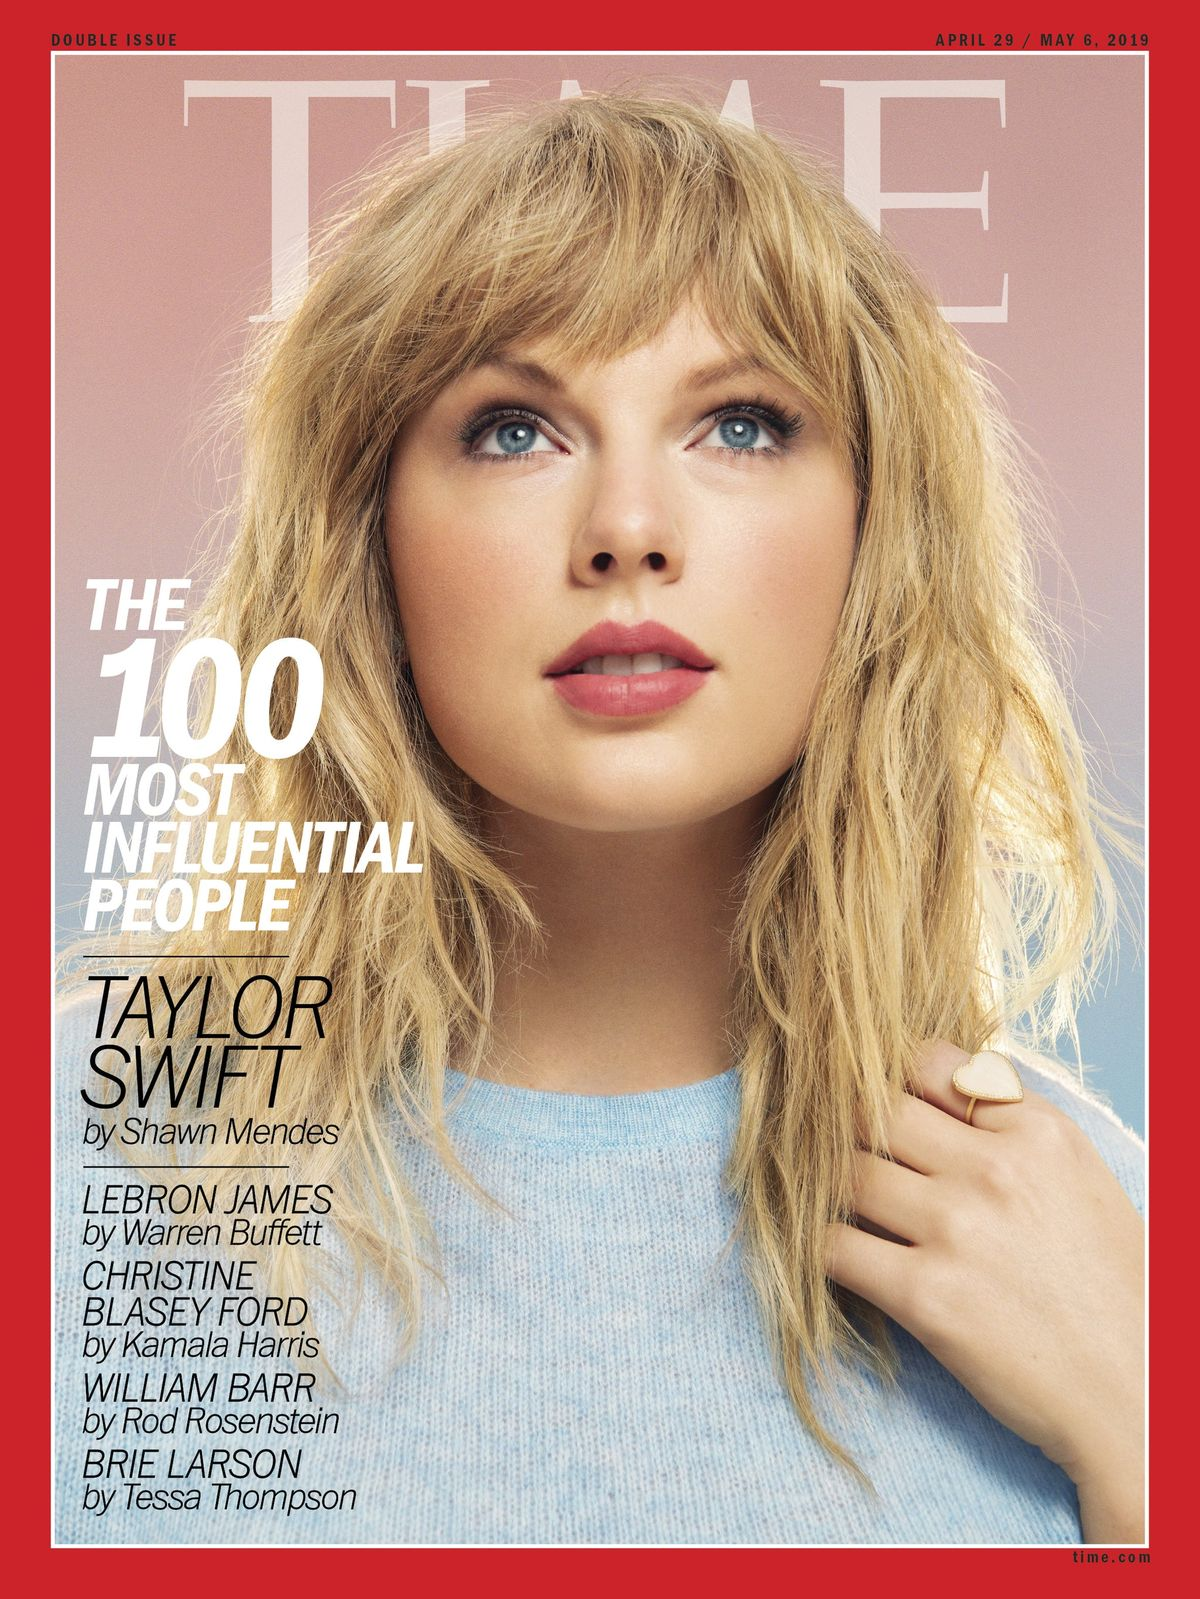 Taylor Swift Makes Time's 100 Most Influential People List